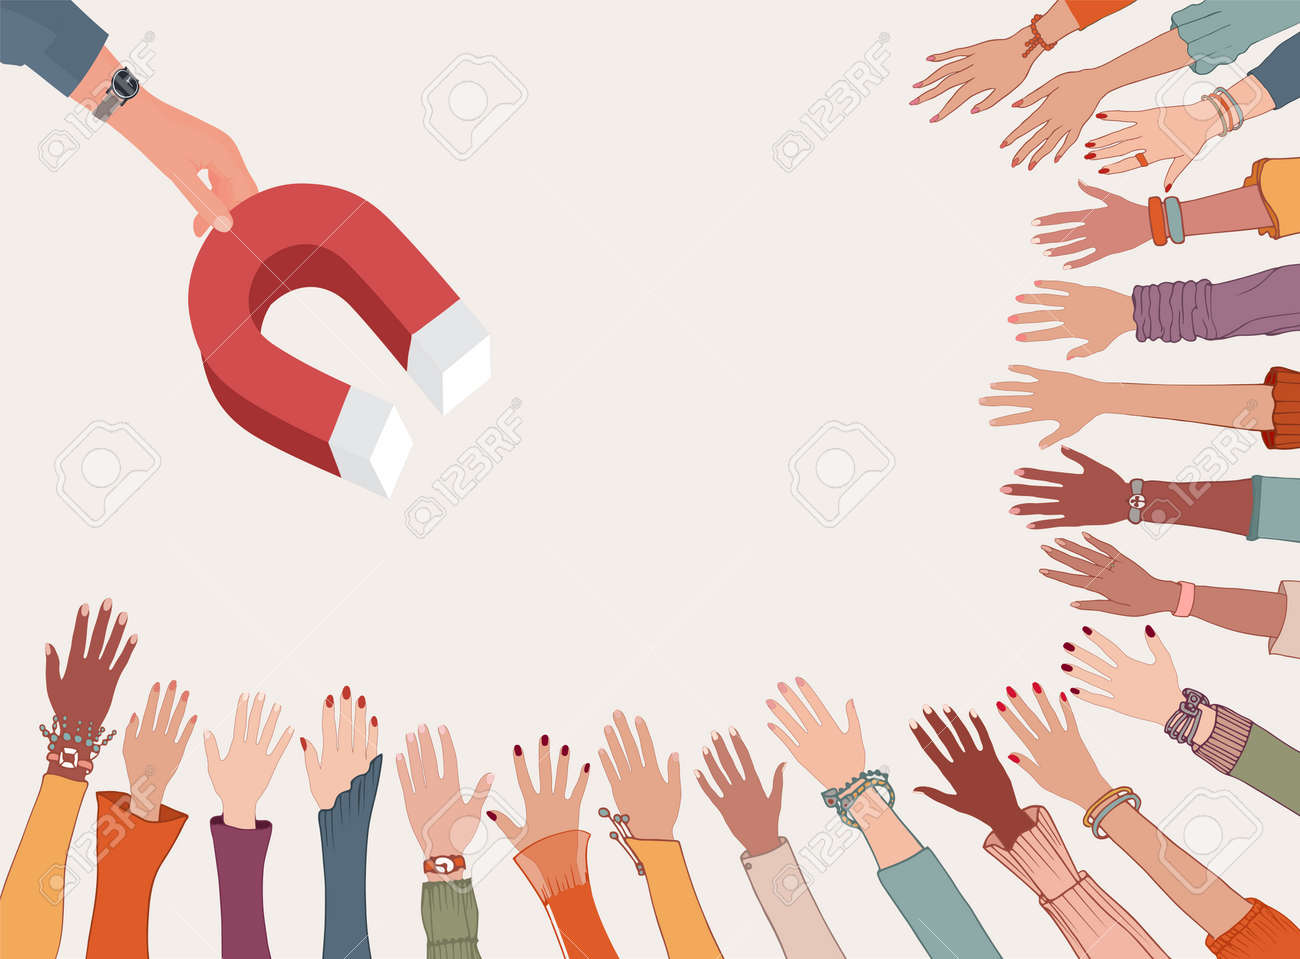 Professional influencer or leader concept. Ability to persuade and motivate. Leadership. Training. Hand holding a magnet which attracts many hands diverse people. Followers - 168150043